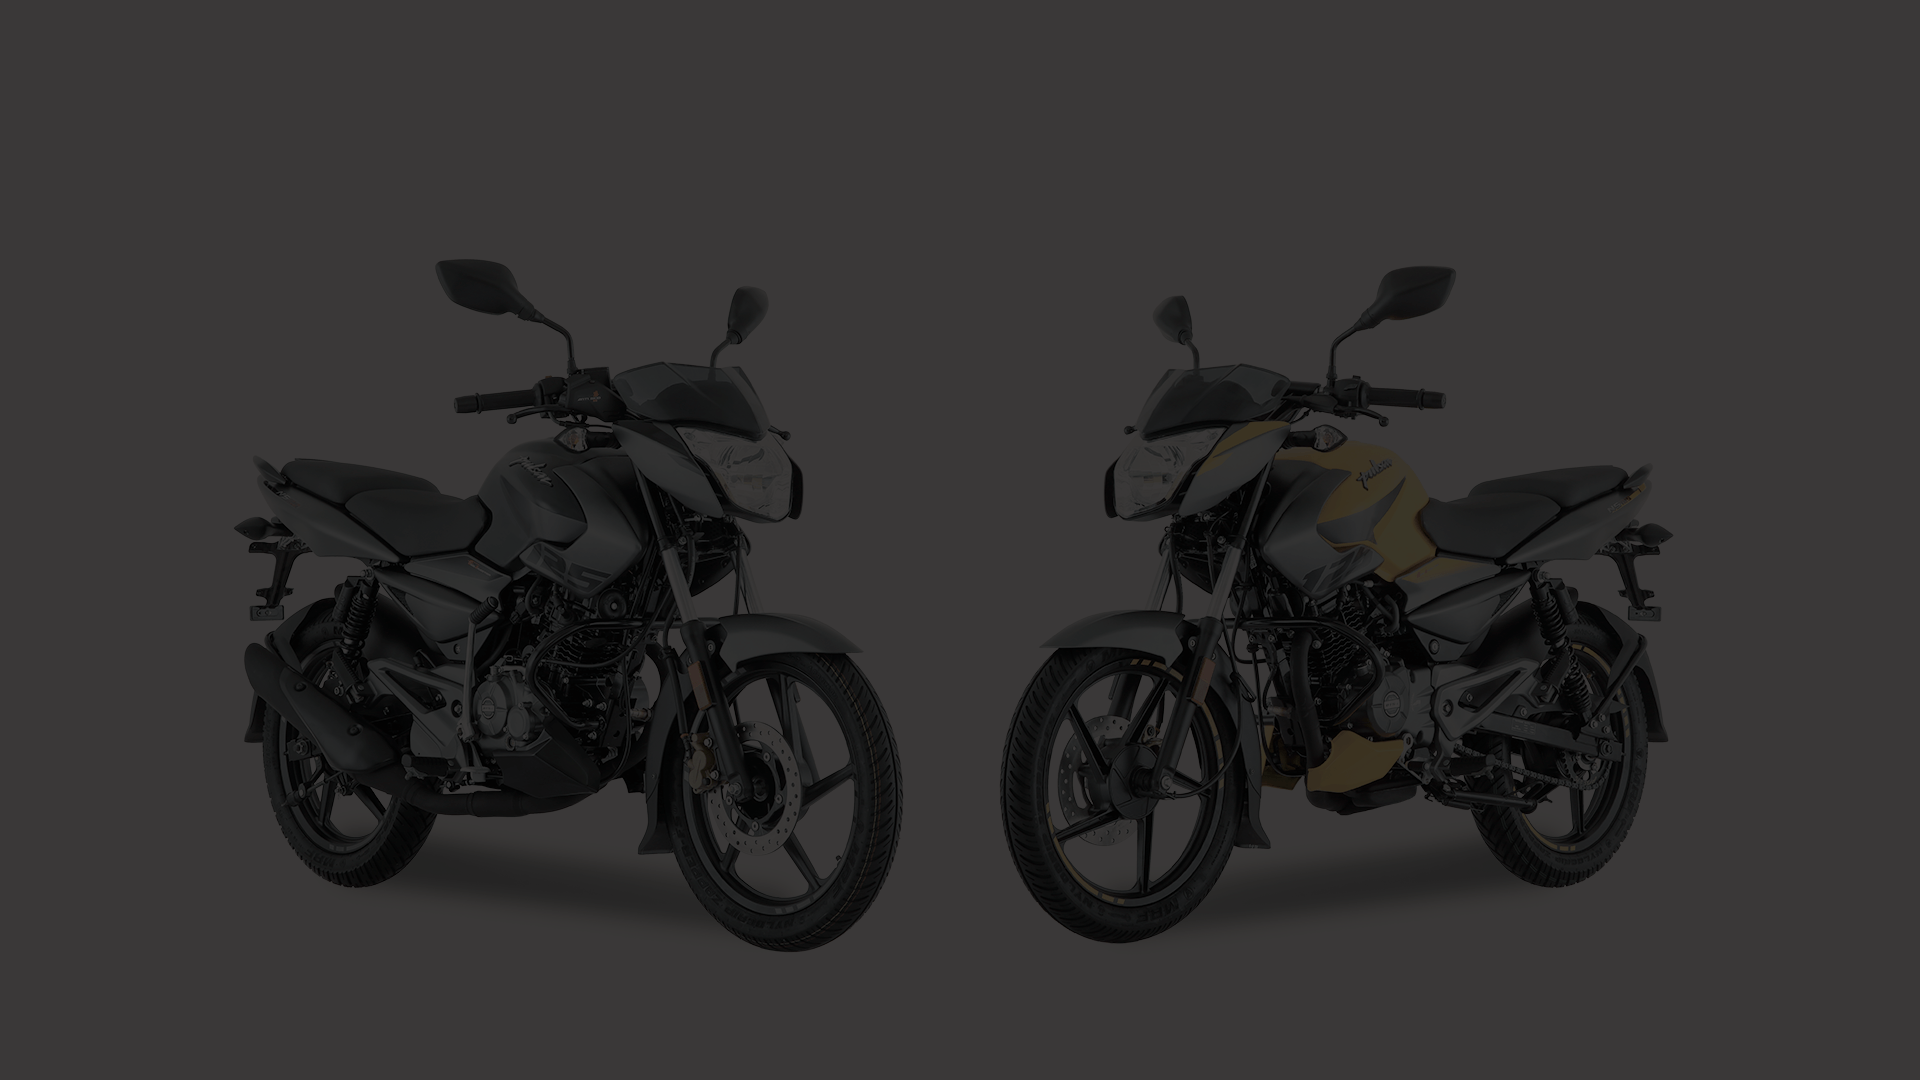 Pulsar-NS125-Variant-Page-Performance-At-Glance-1920x1080